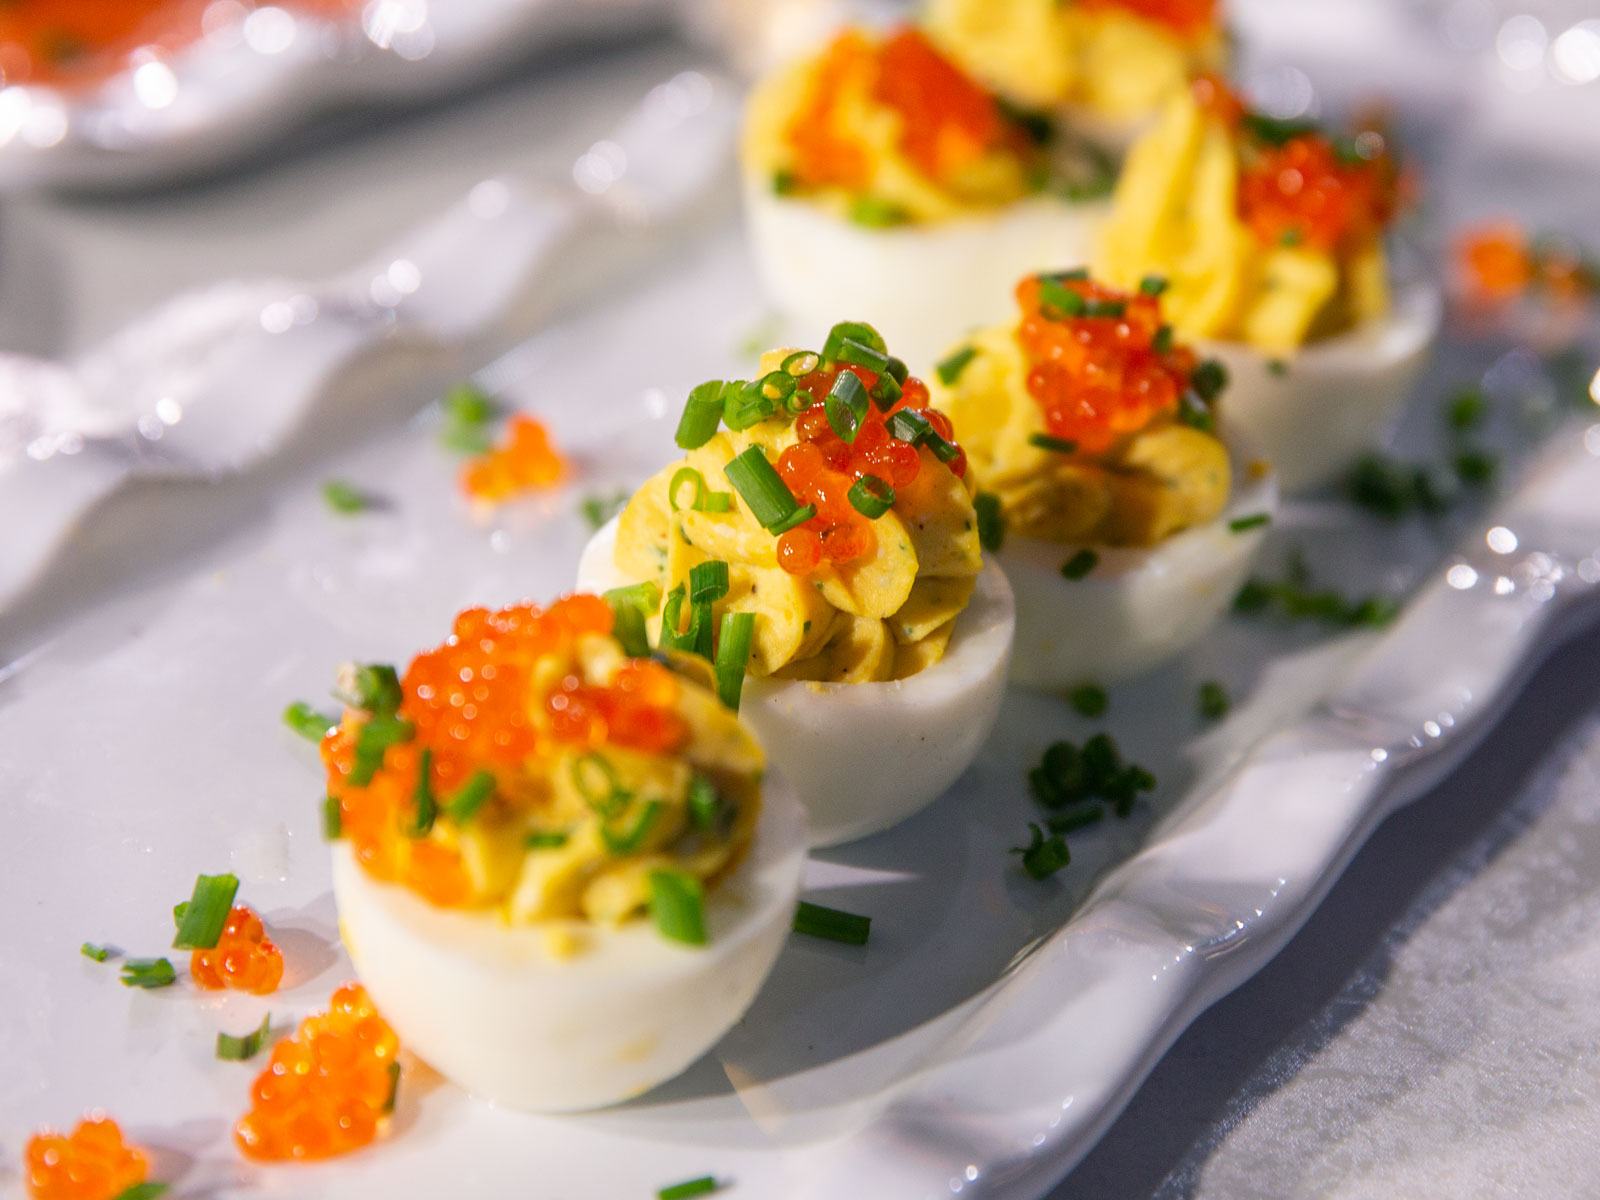 Jacques Pepin's Deviled Eggs